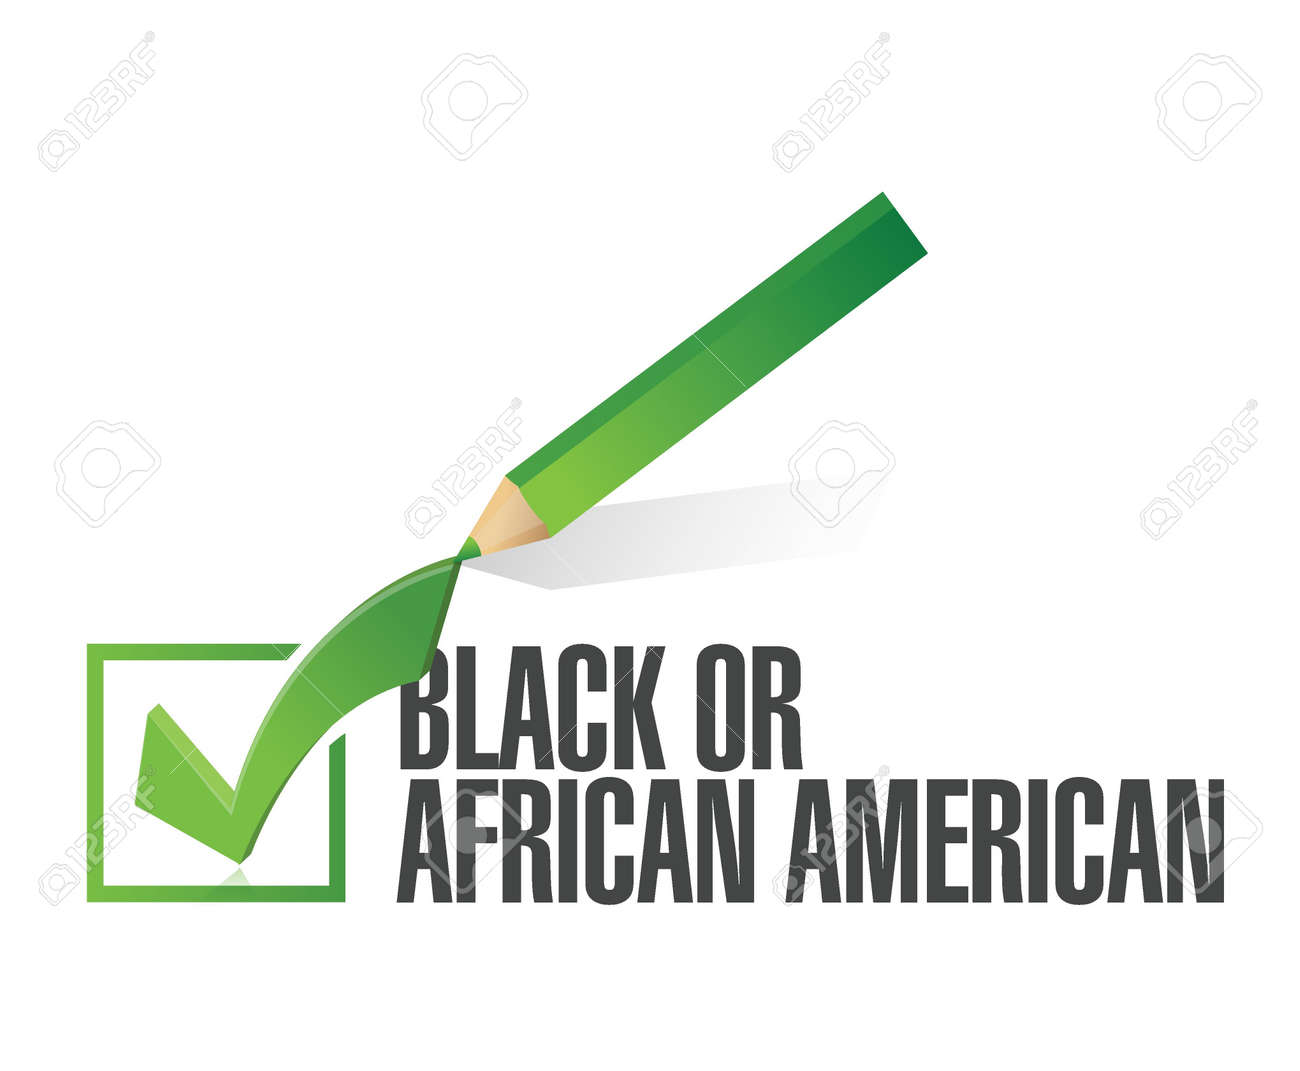 race selection black or african american illustration design over a white background Stock Vector - 20903273